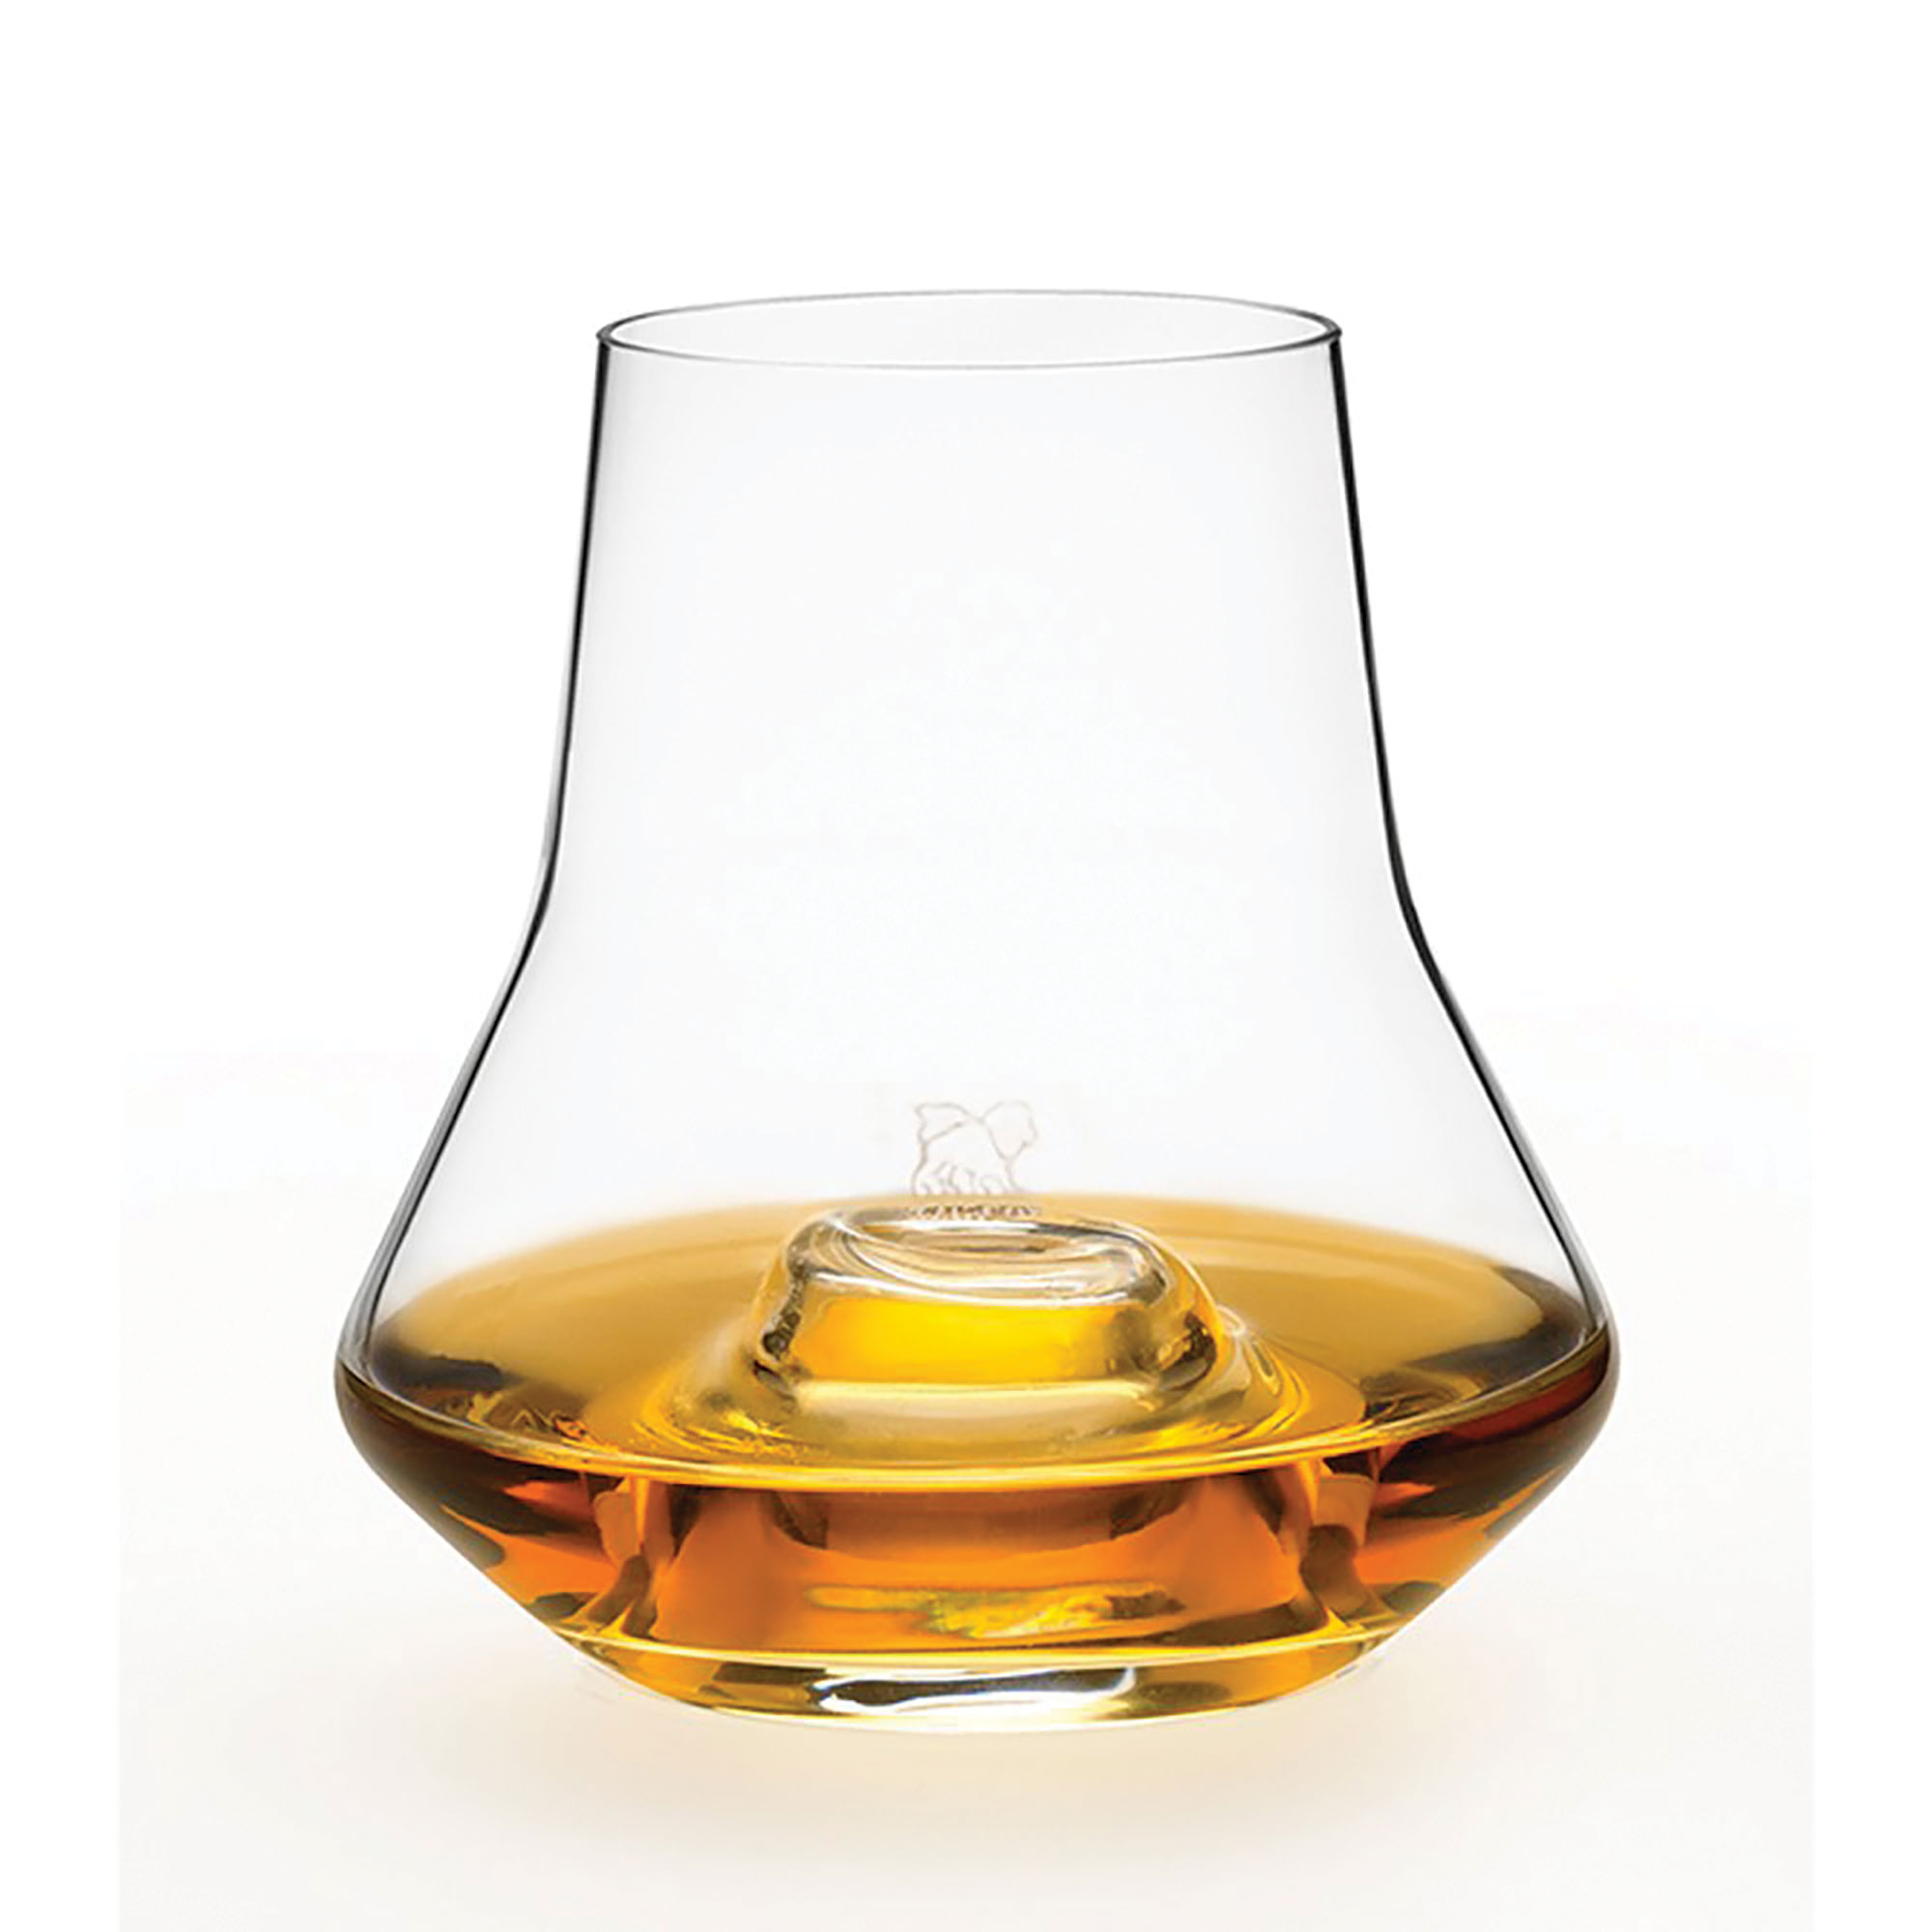 Peugeot Whisky Tasting Glass With Chilling Base Amp Coaster